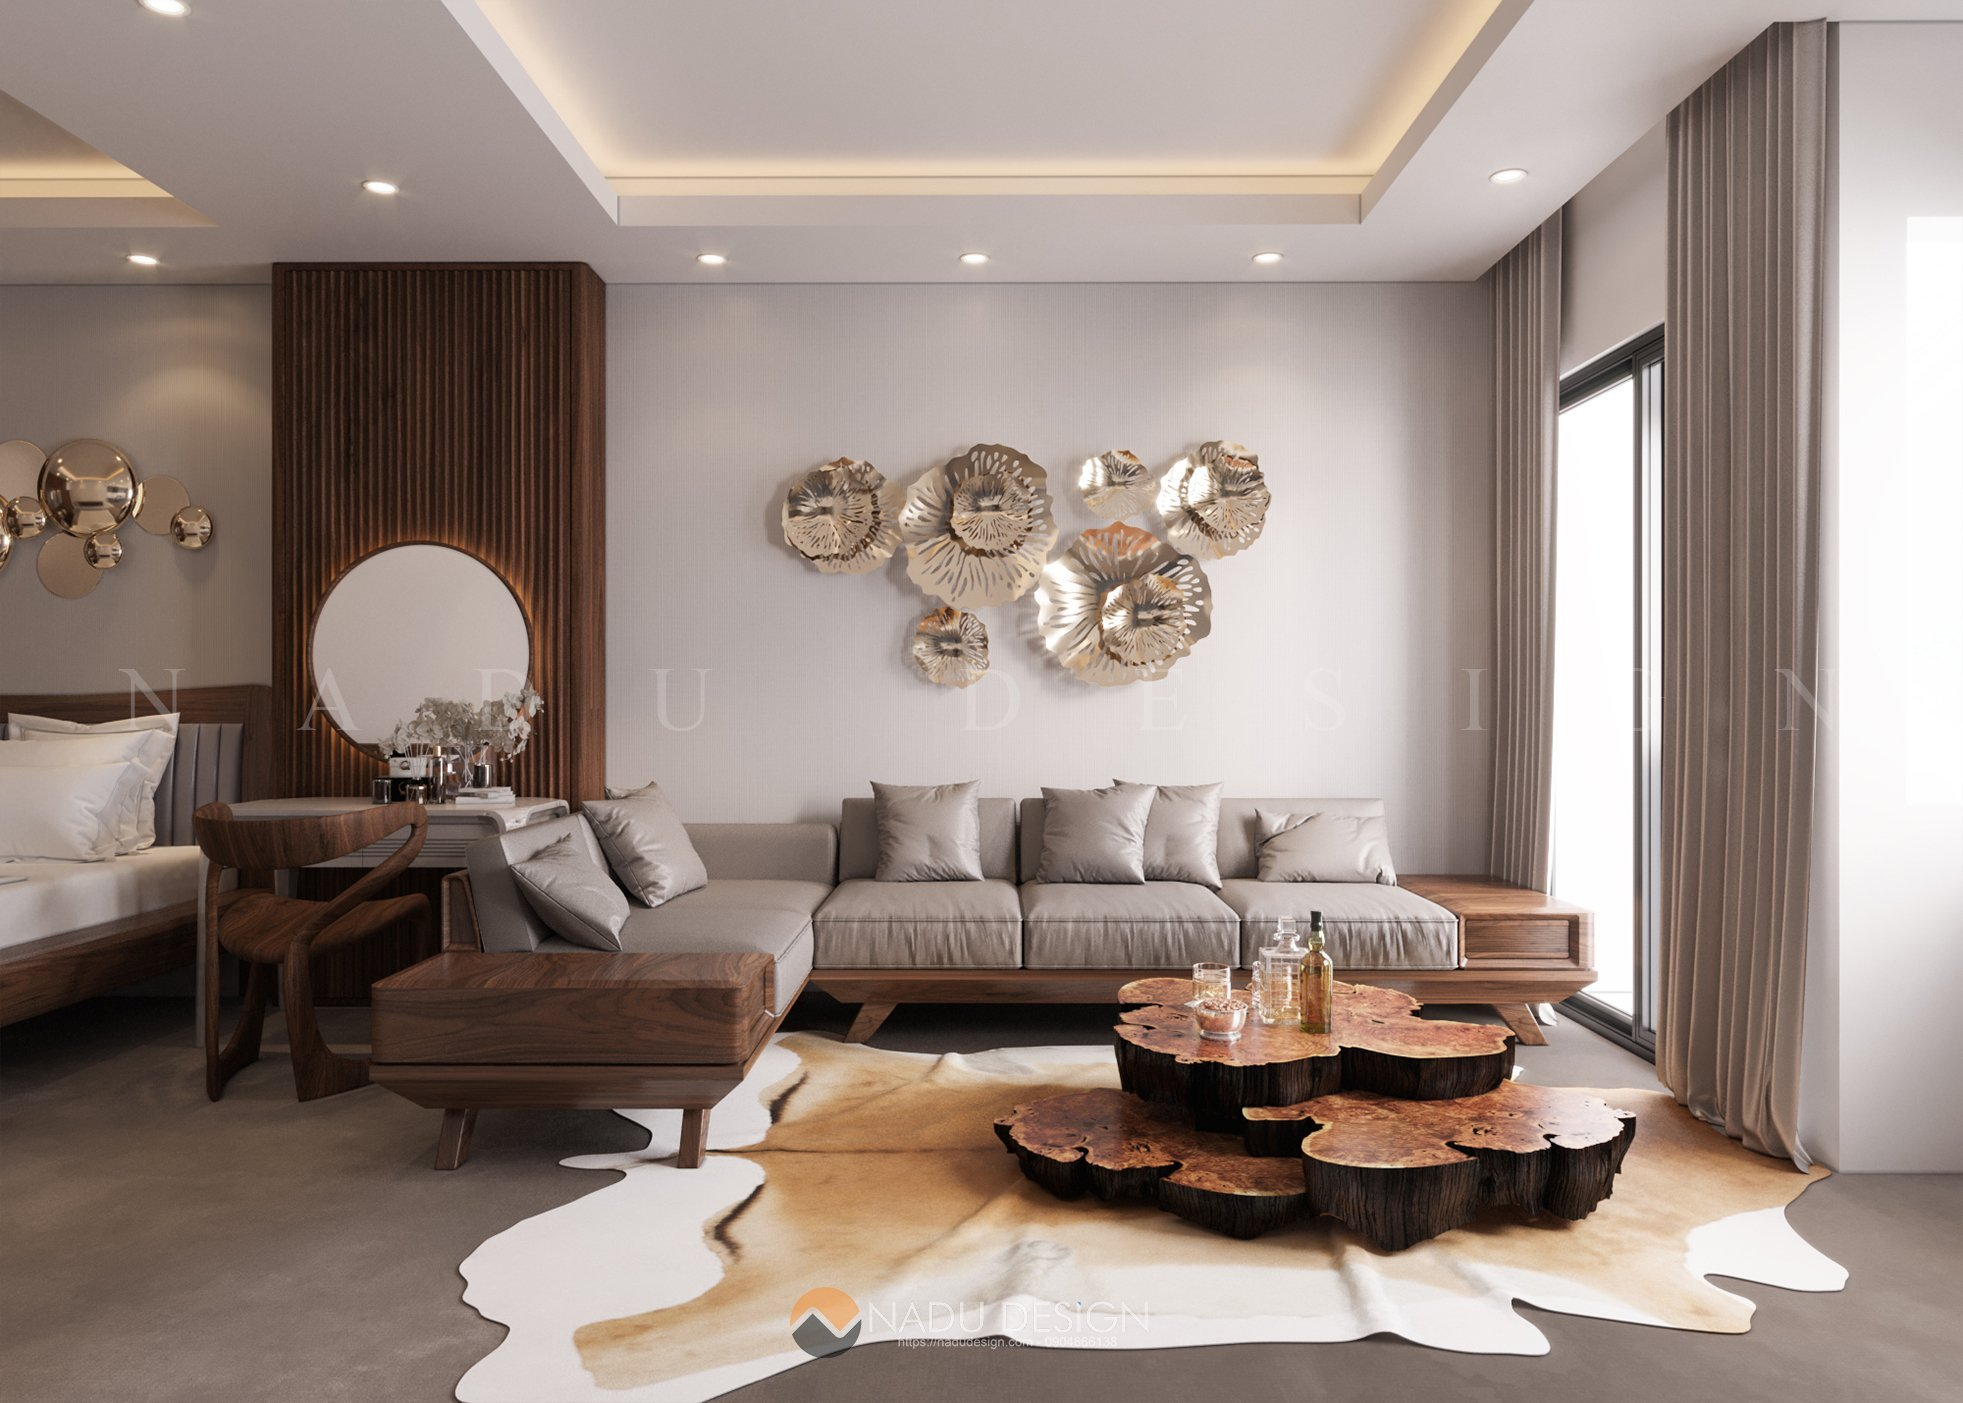 Our obsession is creating minimalist distinctive interiors.